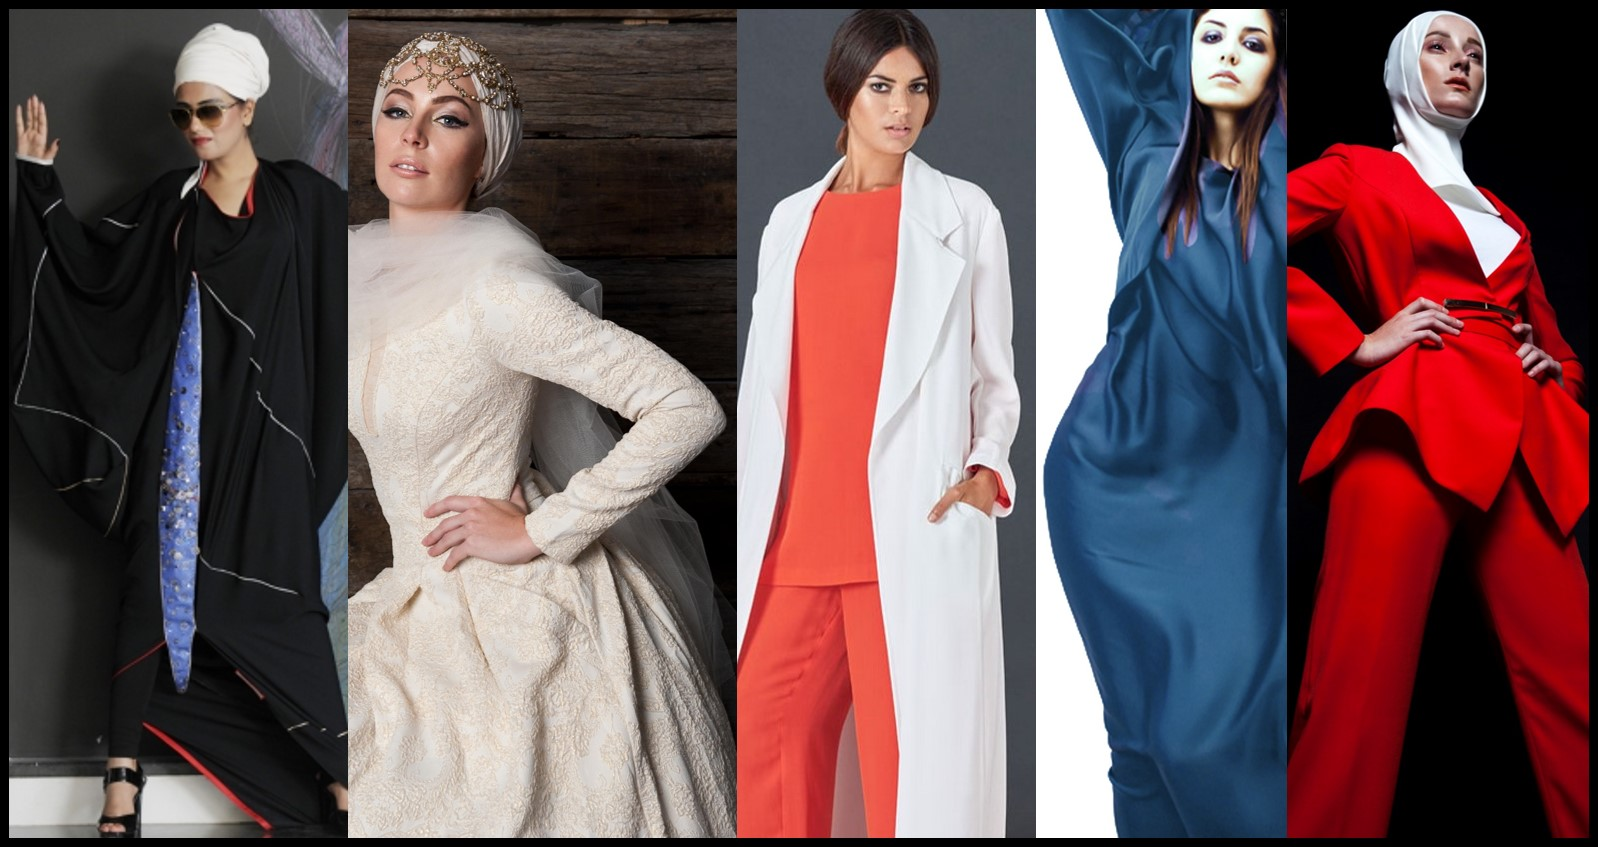 UAE: IFDC Launchs New Fashion Category